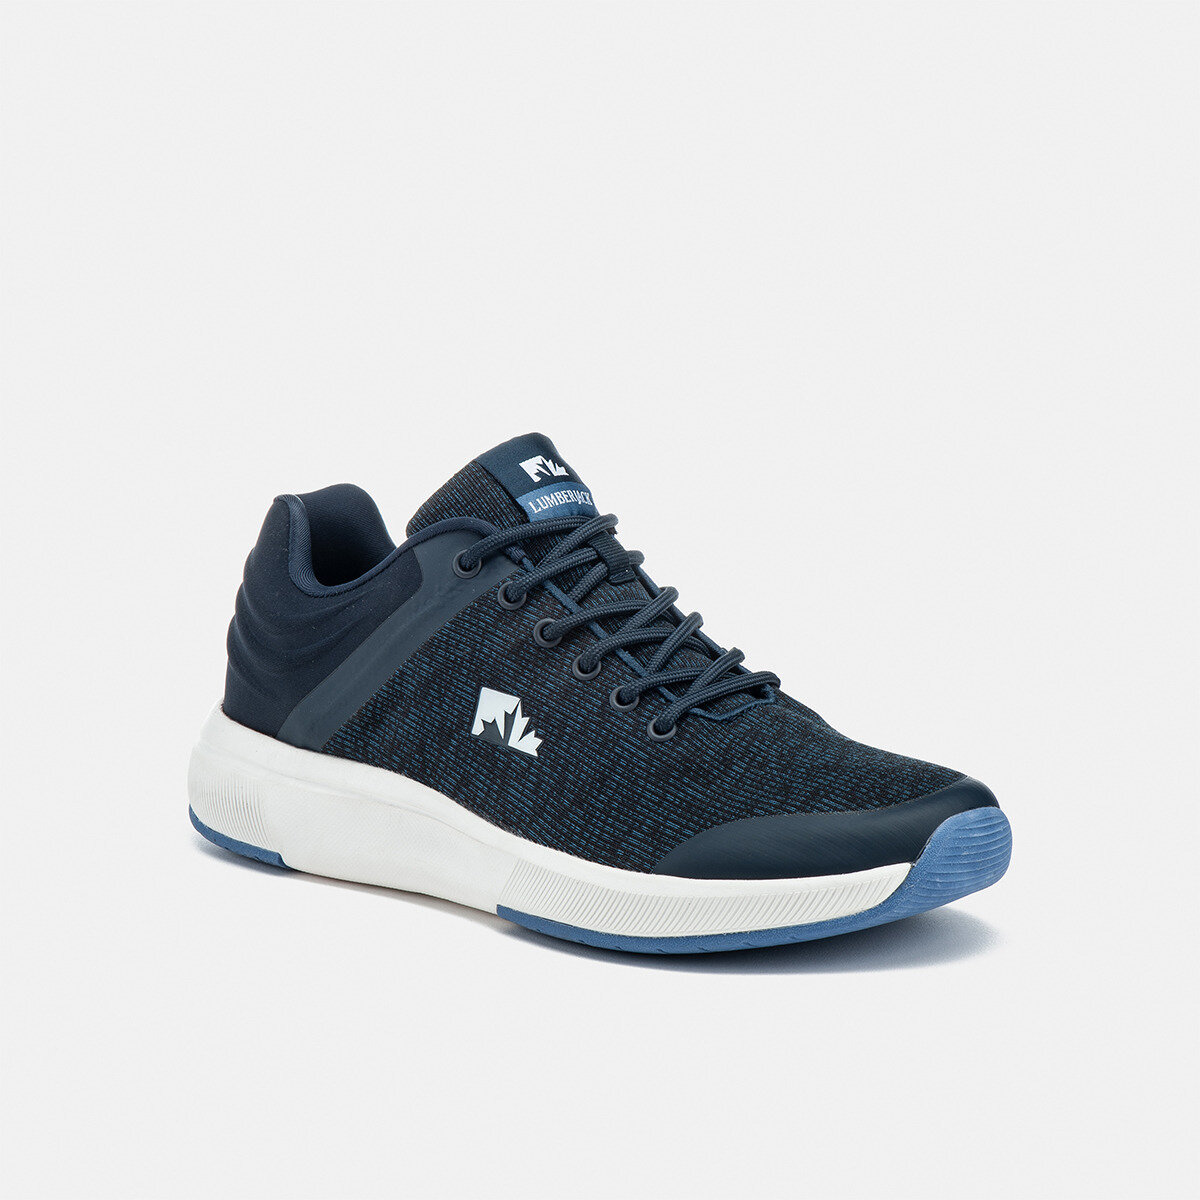 RONNY NAVY BLUE Man Running shoes